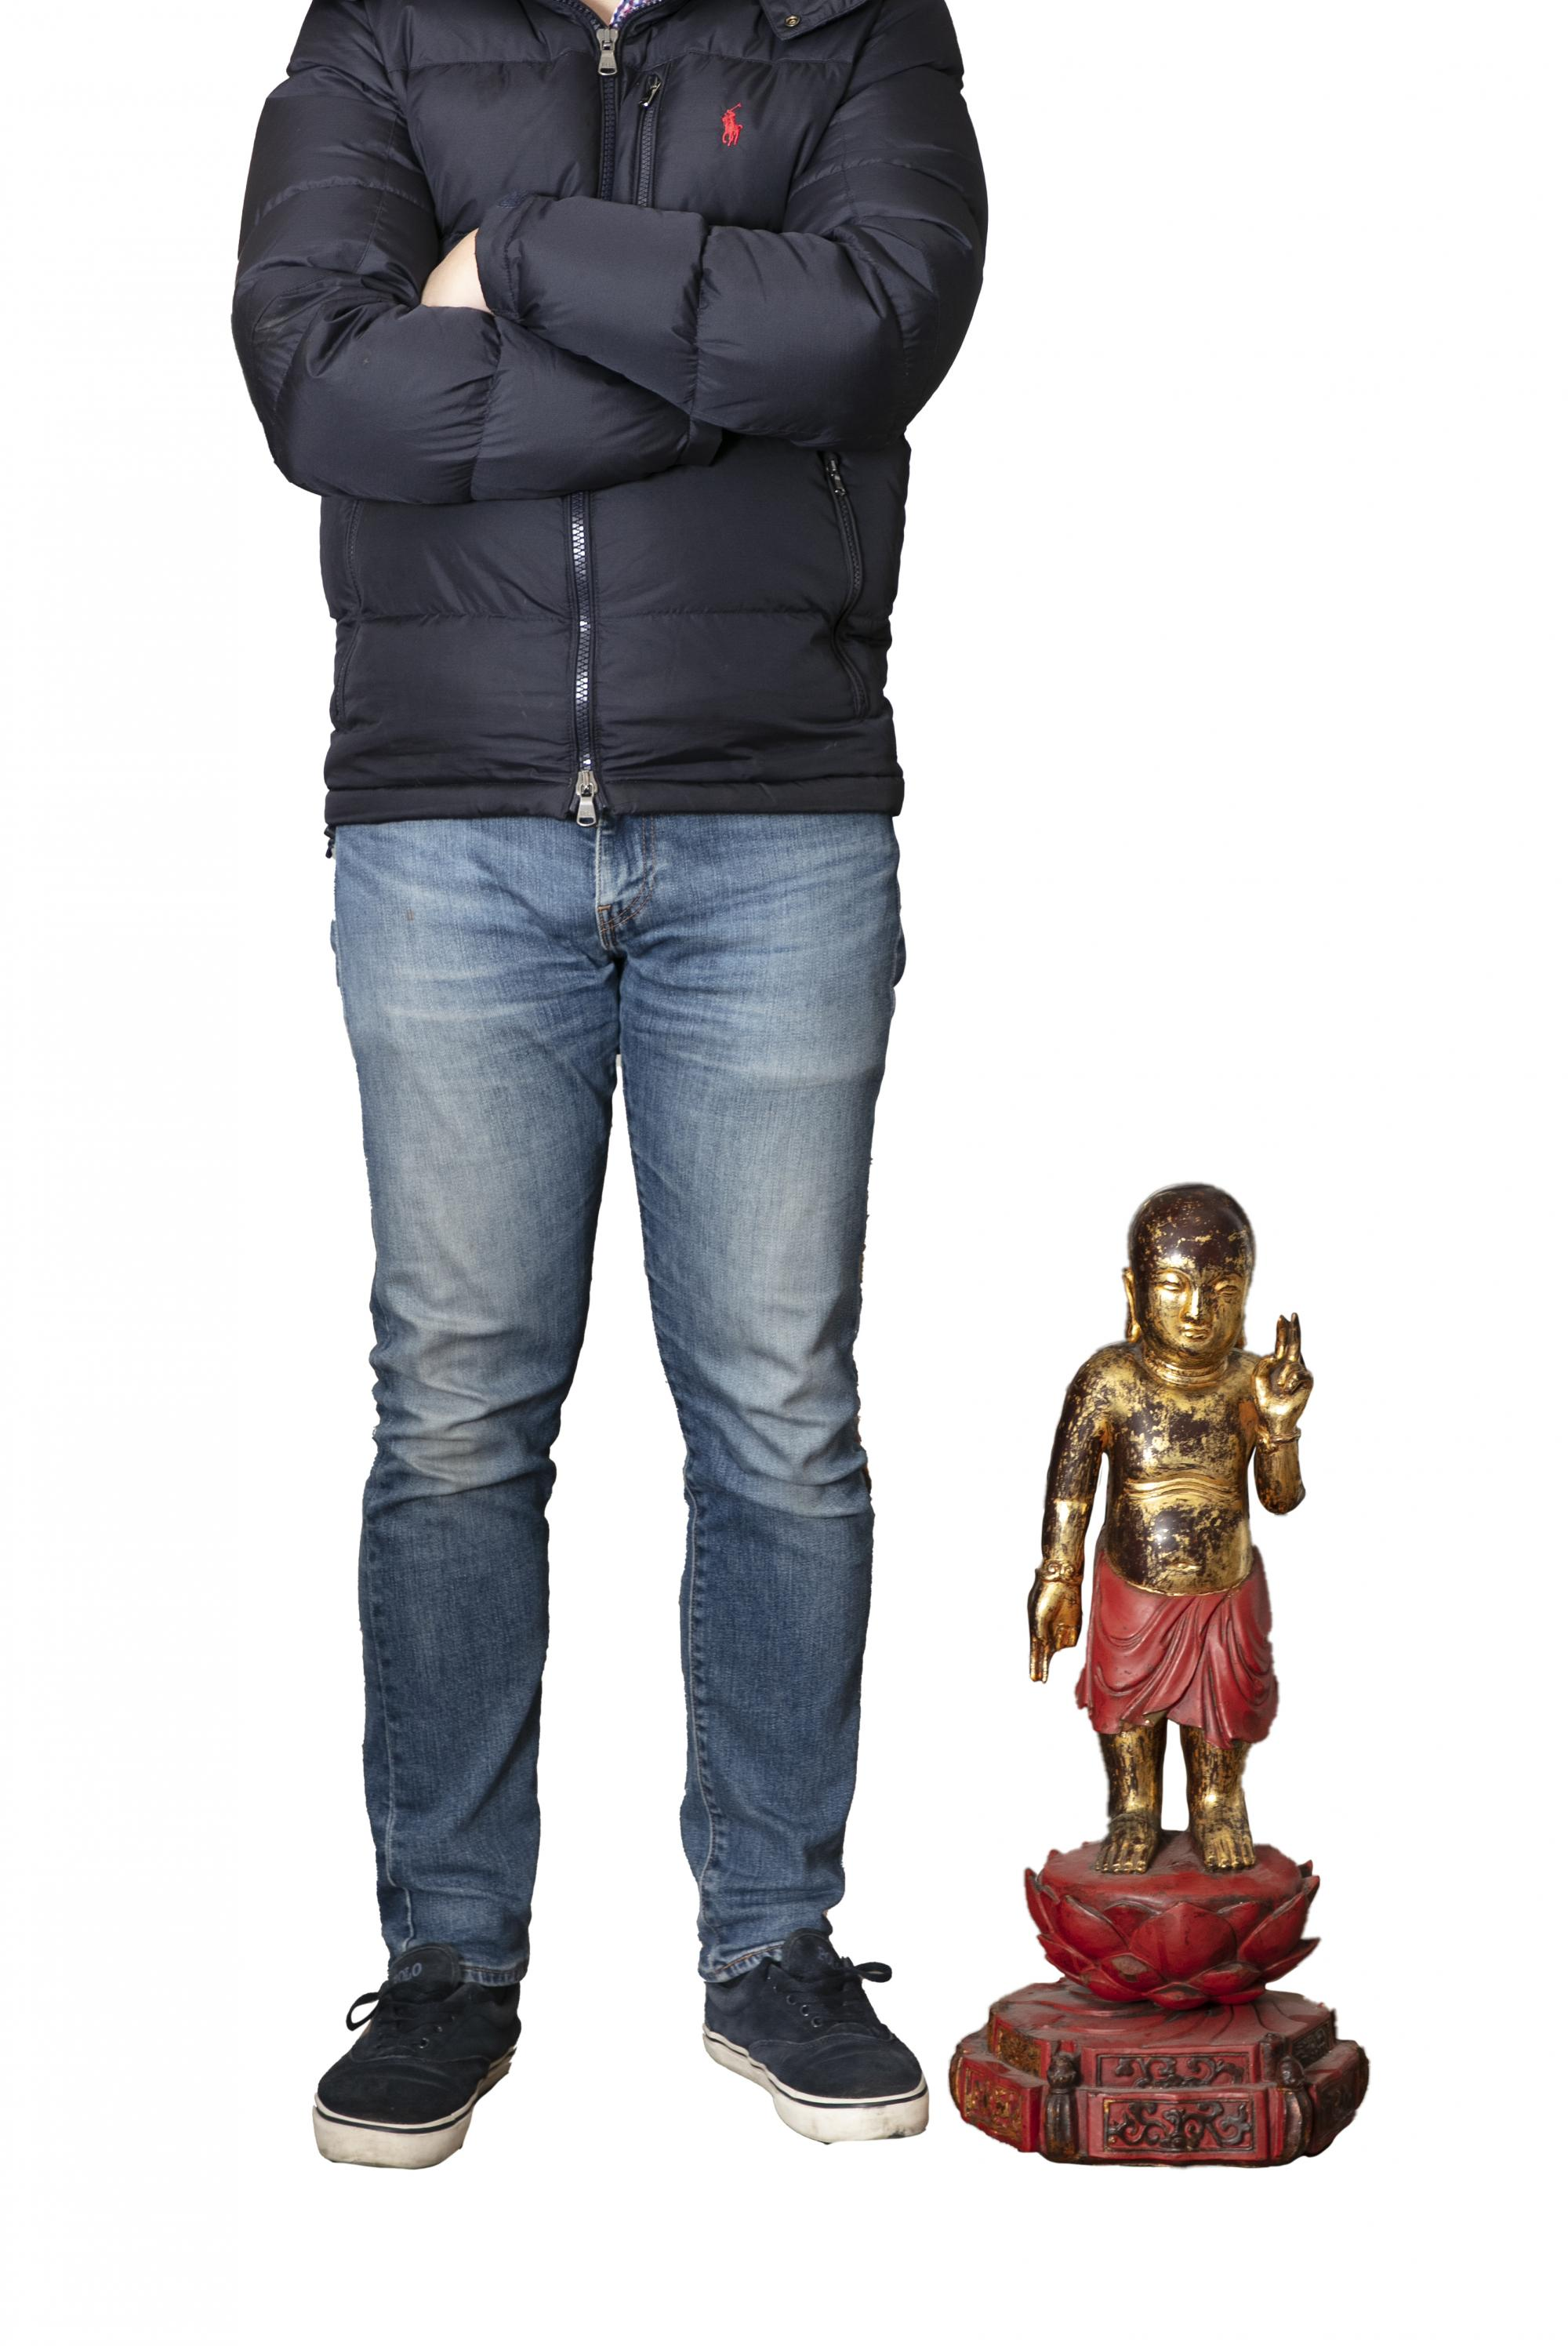 A LARGE GILT-LACQUERED WOODEN SCULPTURE OF THE STANDING INFANT BUDDHA China, Qing Dynasty (or - Image 13 of 20